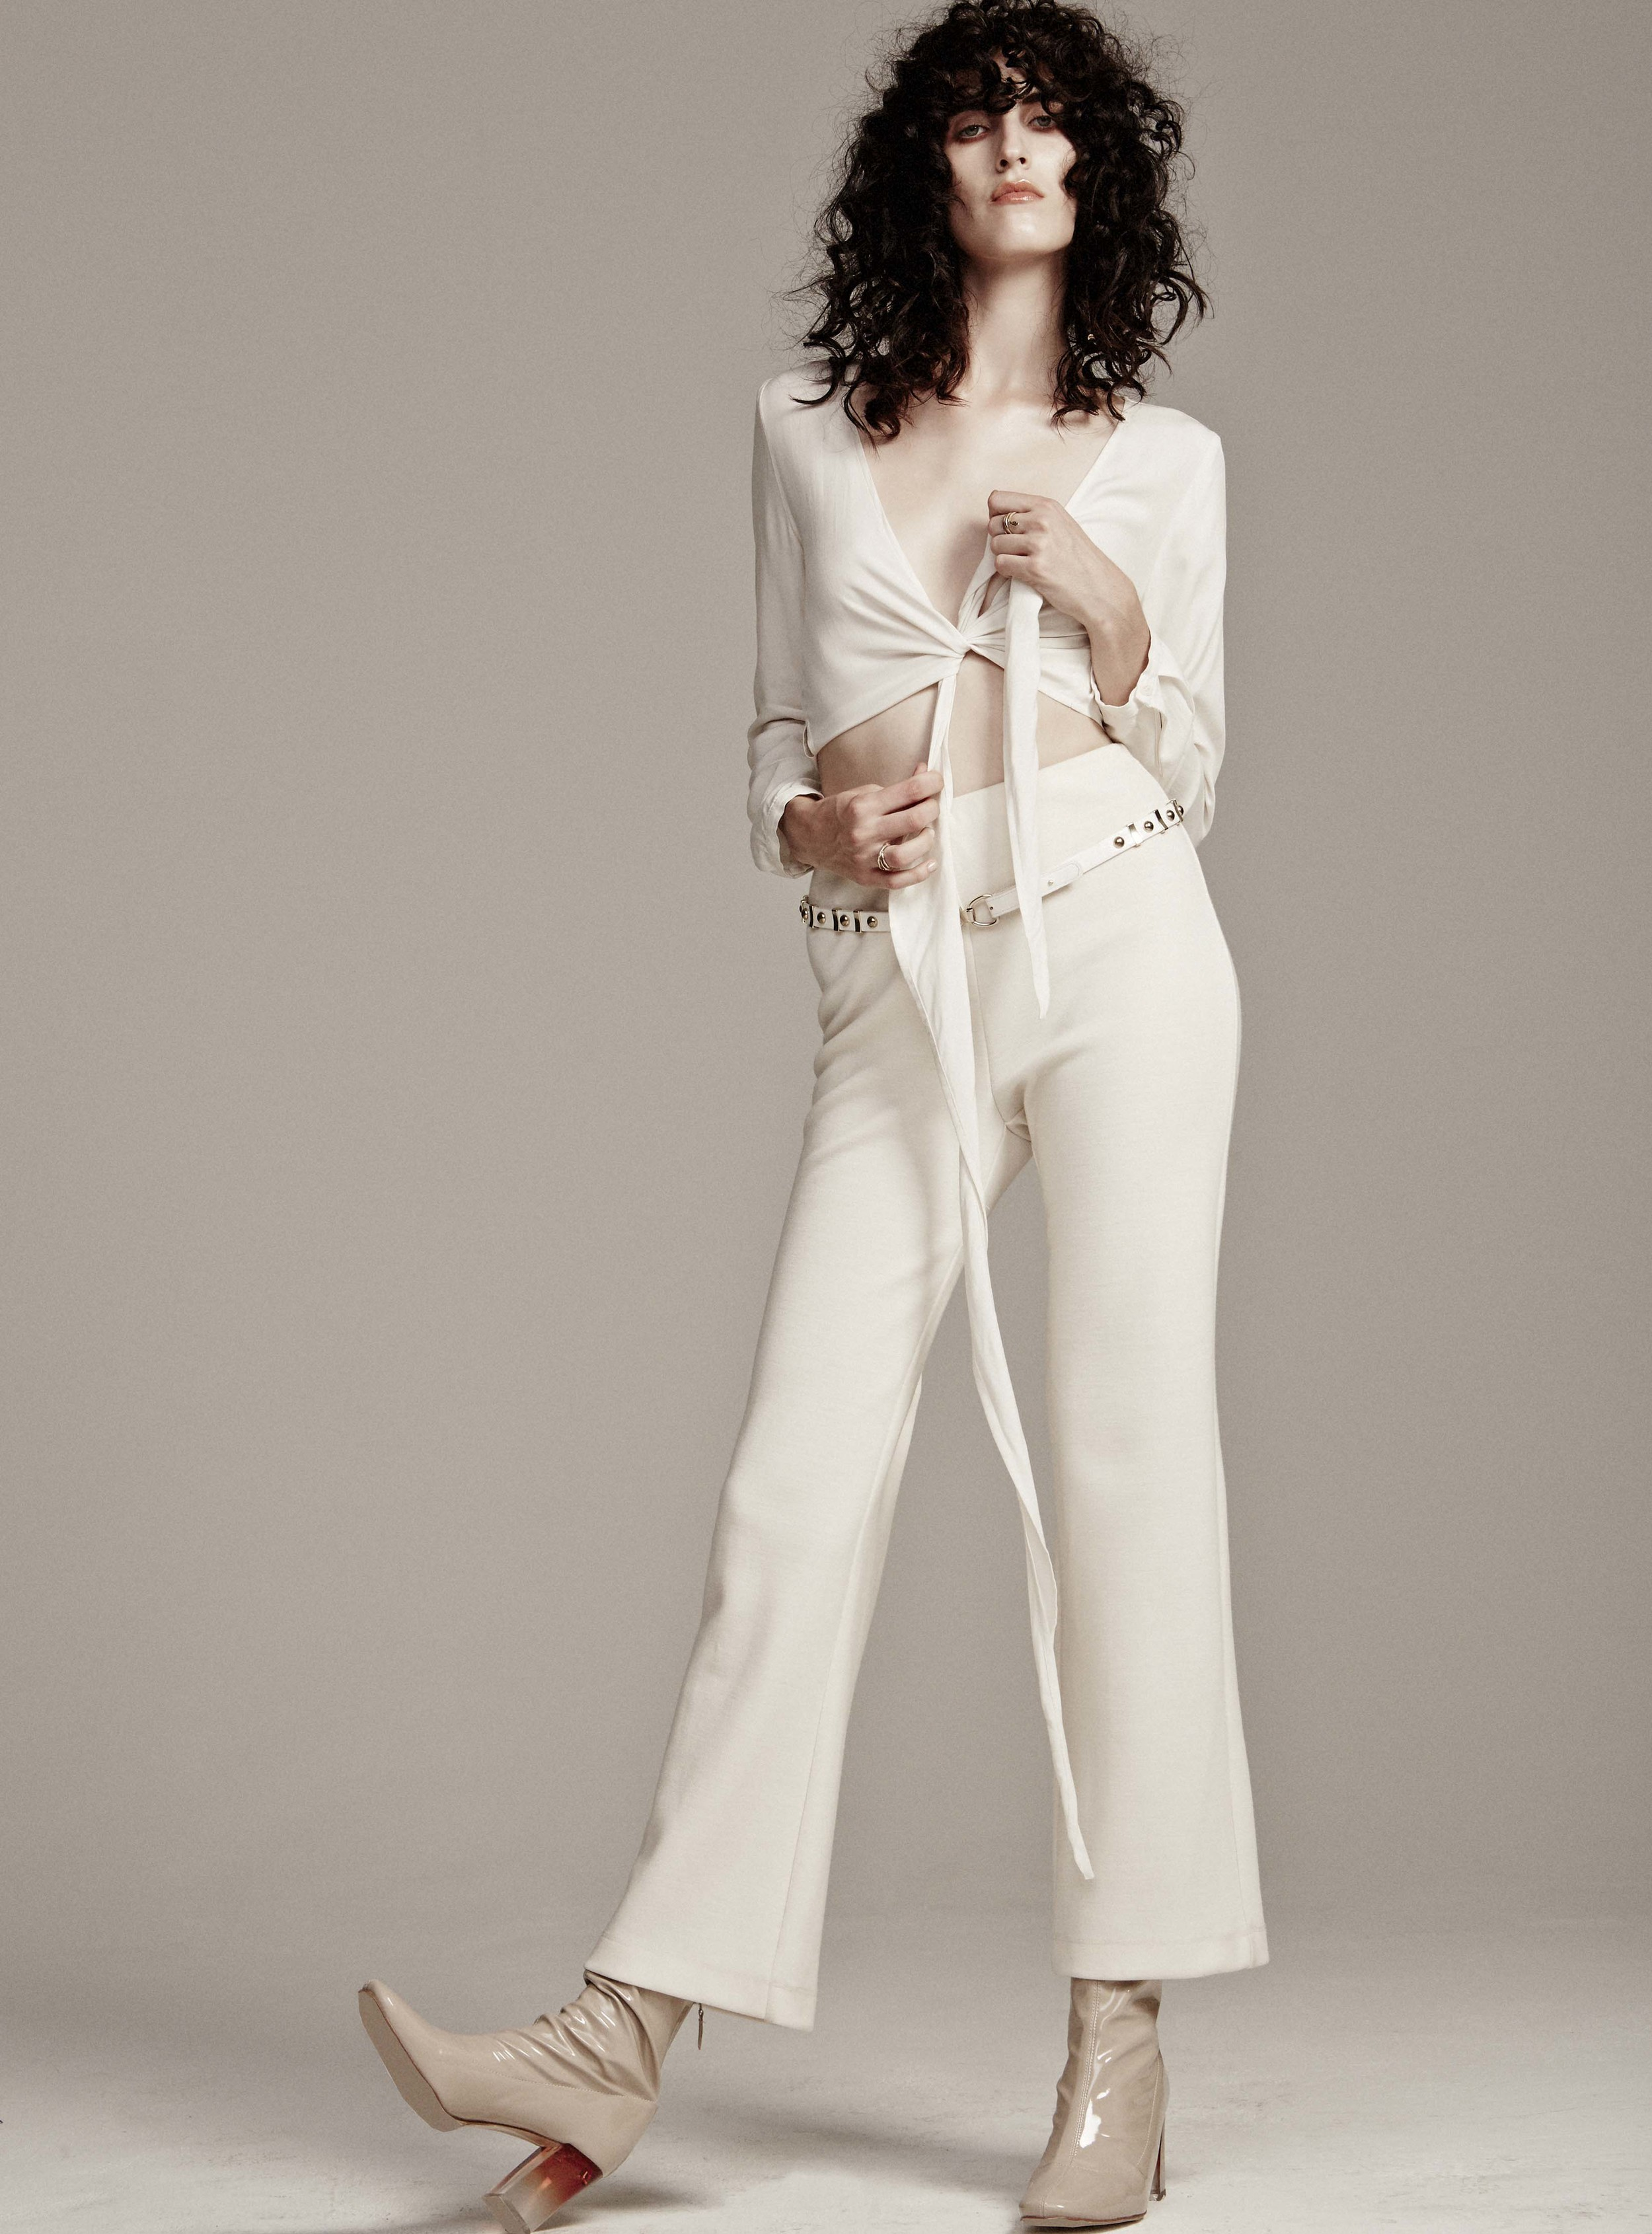 Blouse by Samiji, Trousers by  Maryam Nassir Zadeh,  Earring and Rings by Lorae Russo,  Stylist's own Boots